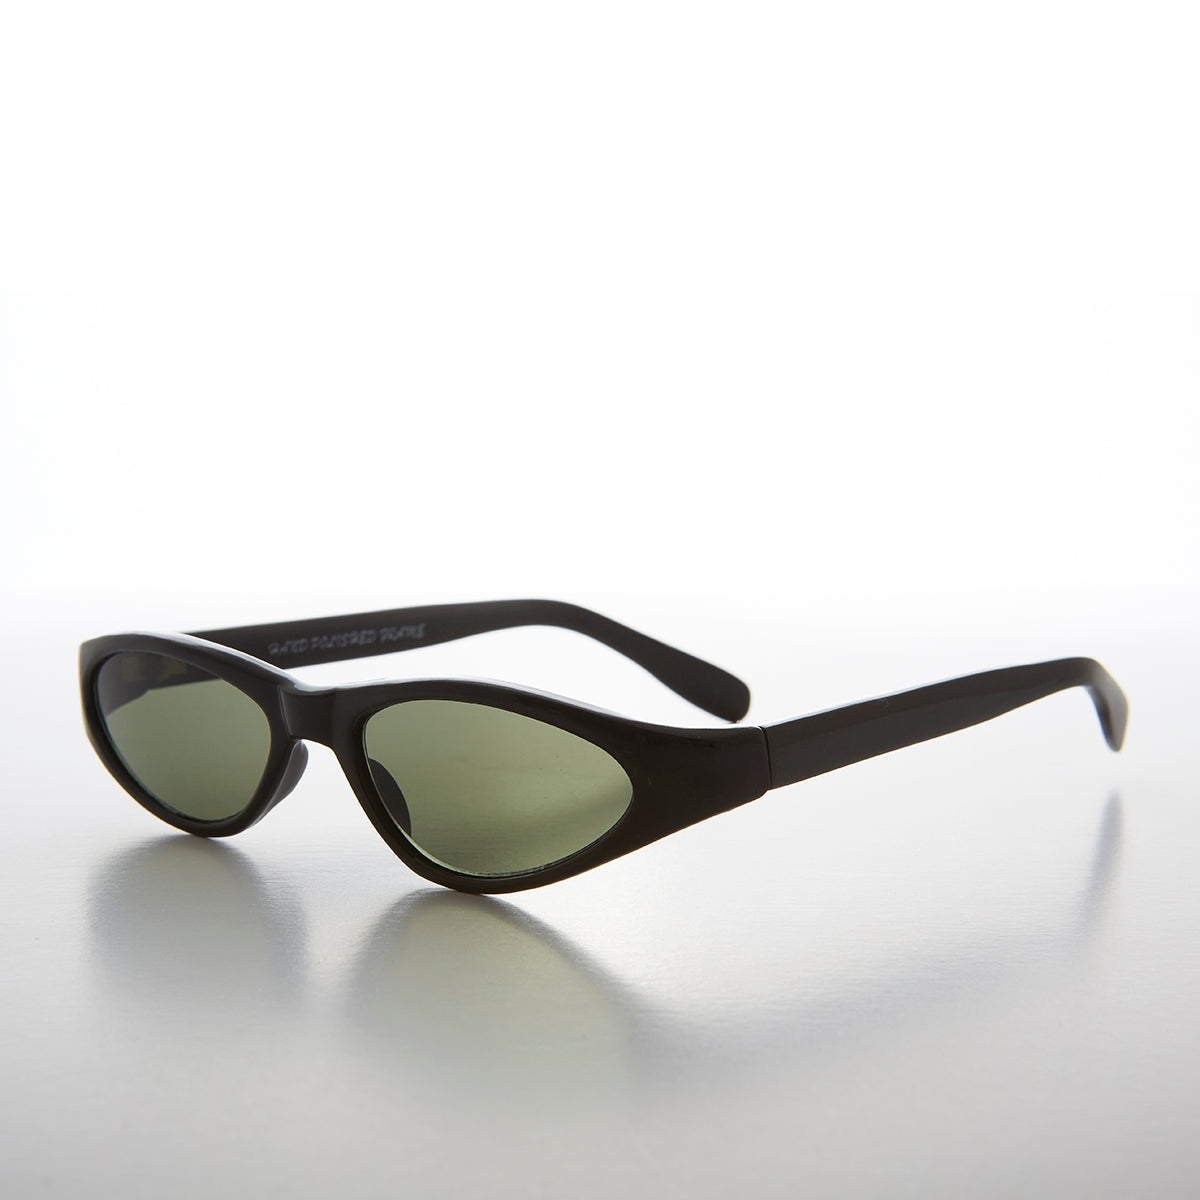 Edgy Small Cat Eye 90s Vintage Sunglass - Vicky